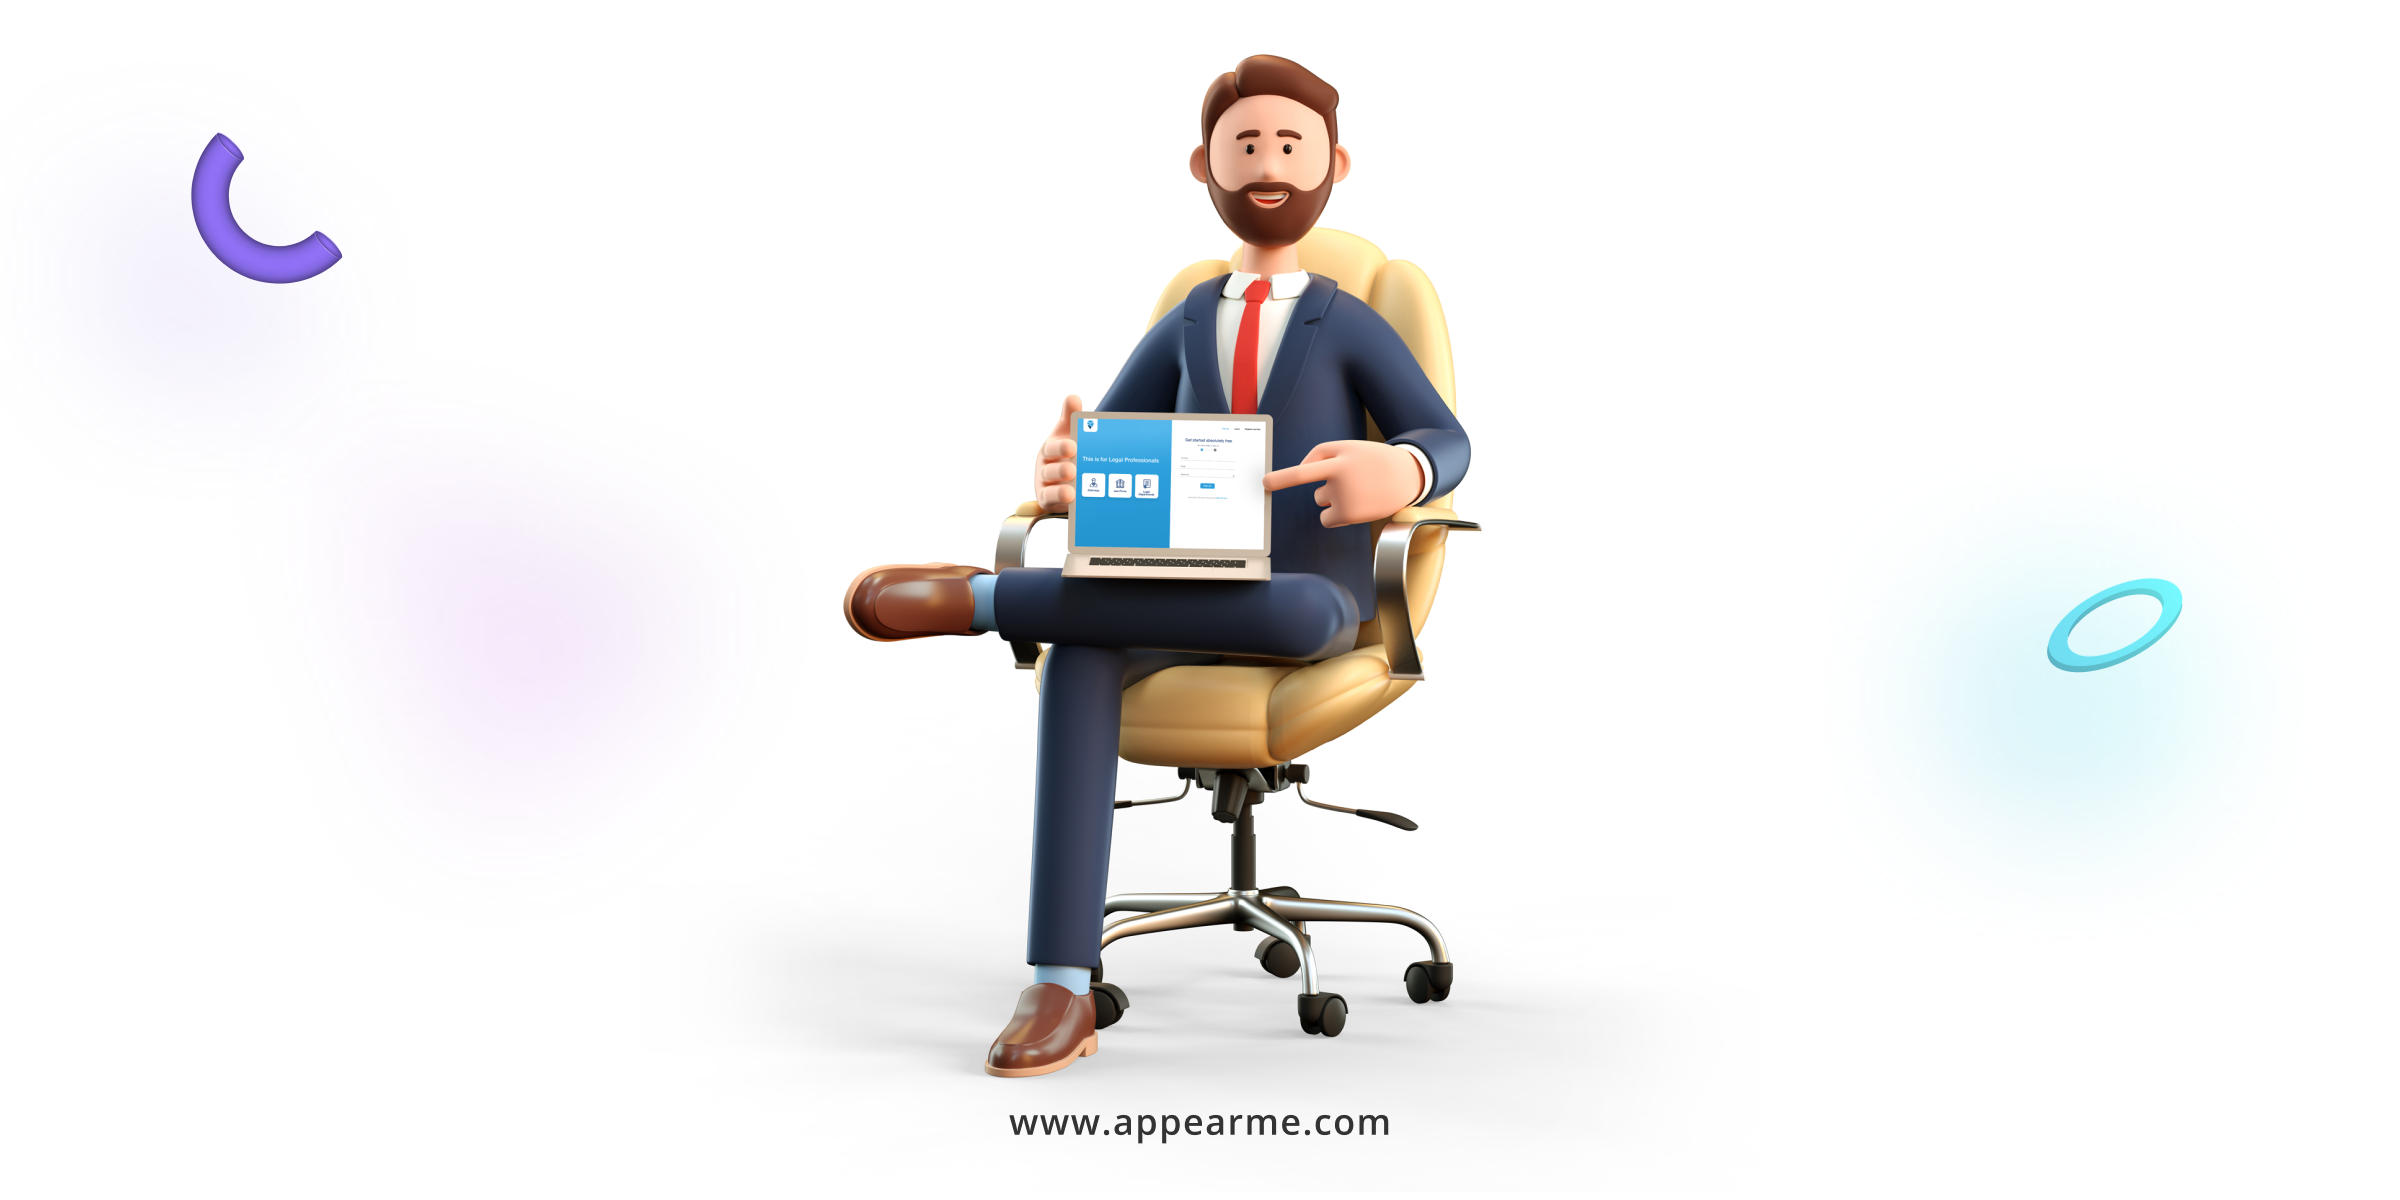 AppearMe: More Efficiency and Unlimited Opportunities for Freelance Attorneys